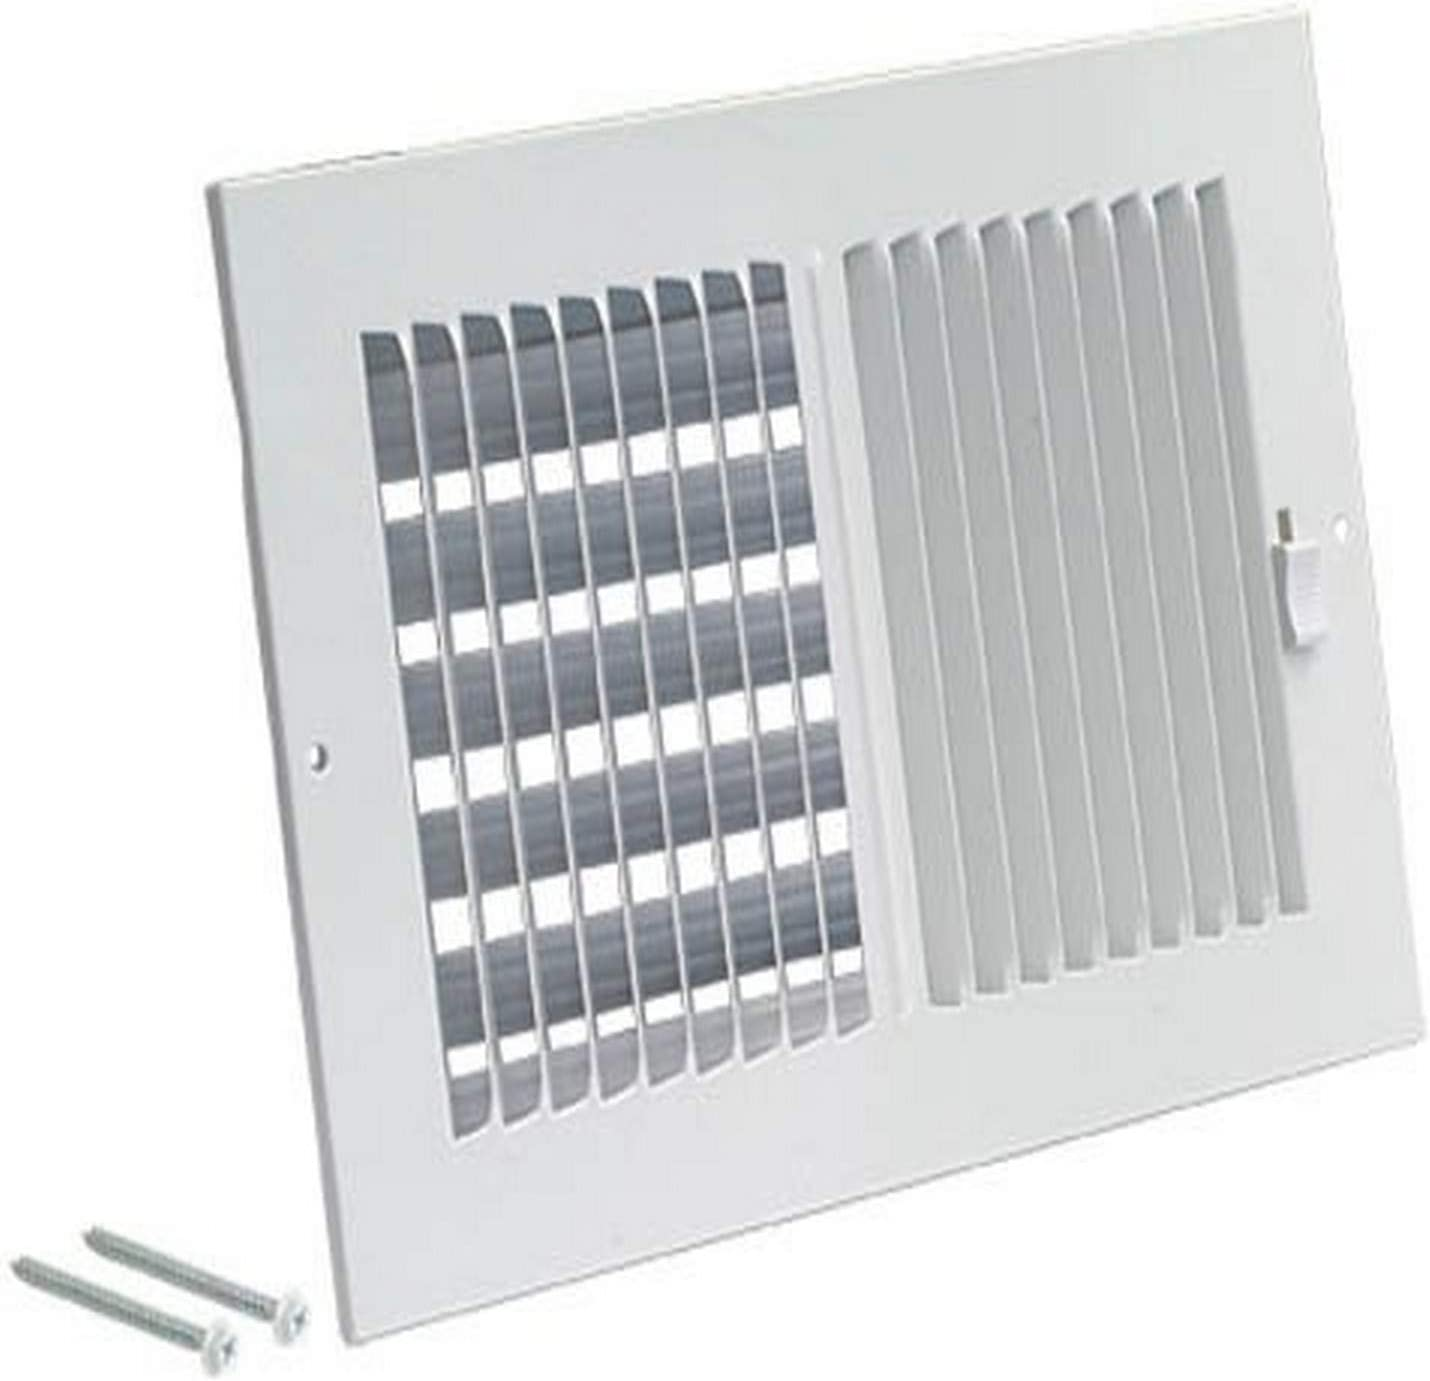 EZ-FLO 61662 Two-Way Ventilation Steel Sidewall/Ceiling Register, 14